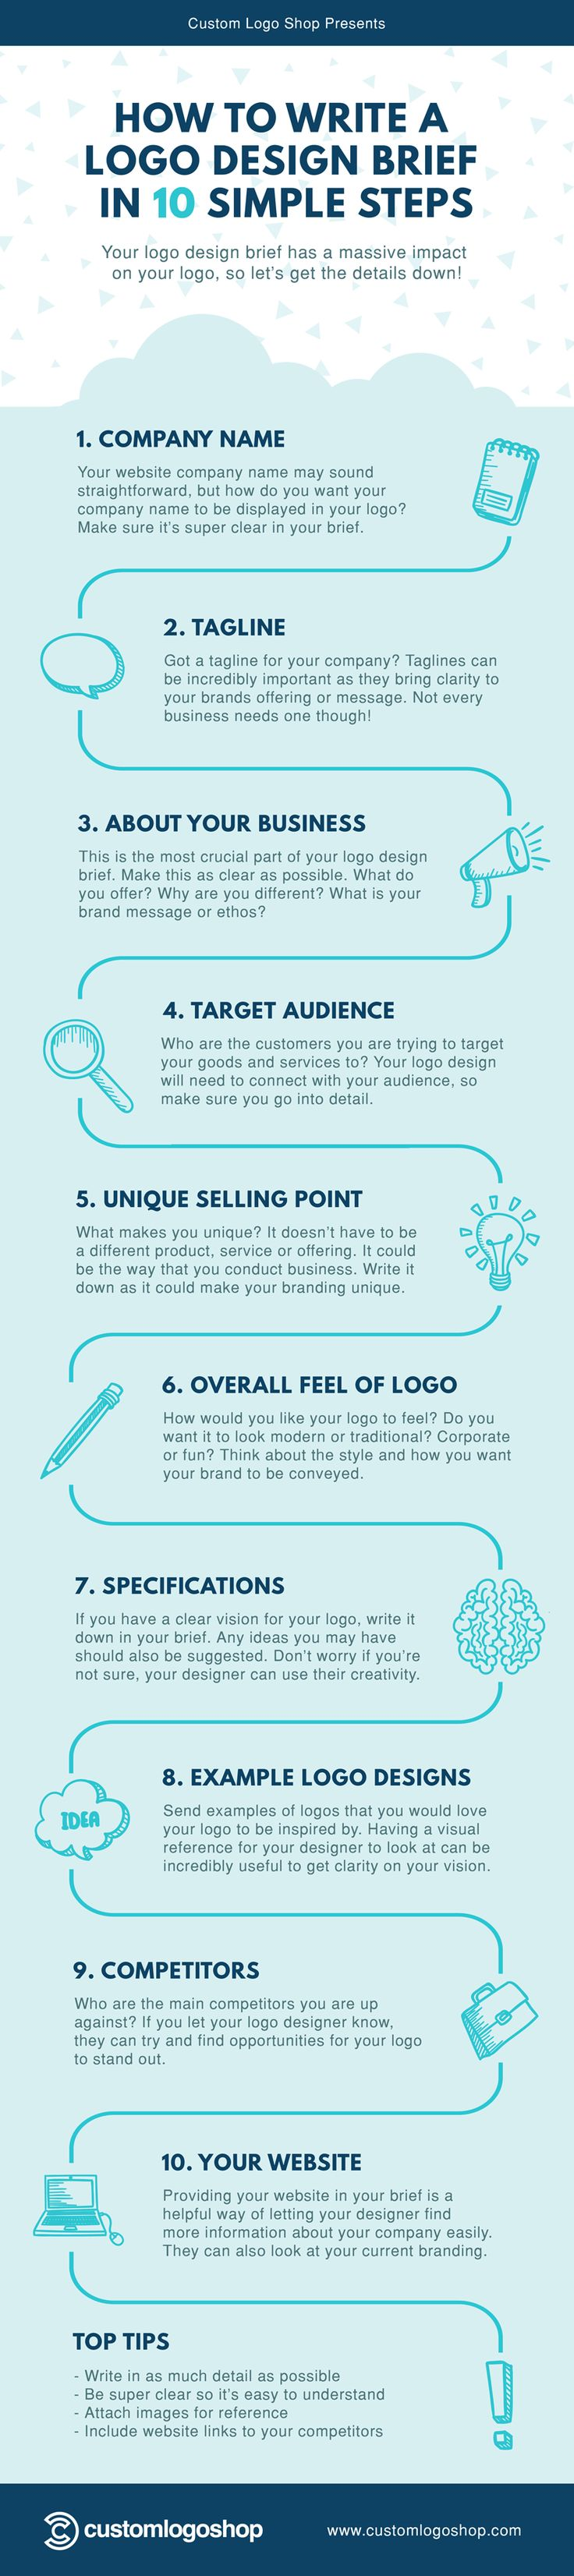 How to Write a Logo Design Brief in 10 Simple Steps #Infographic #Design #Logo